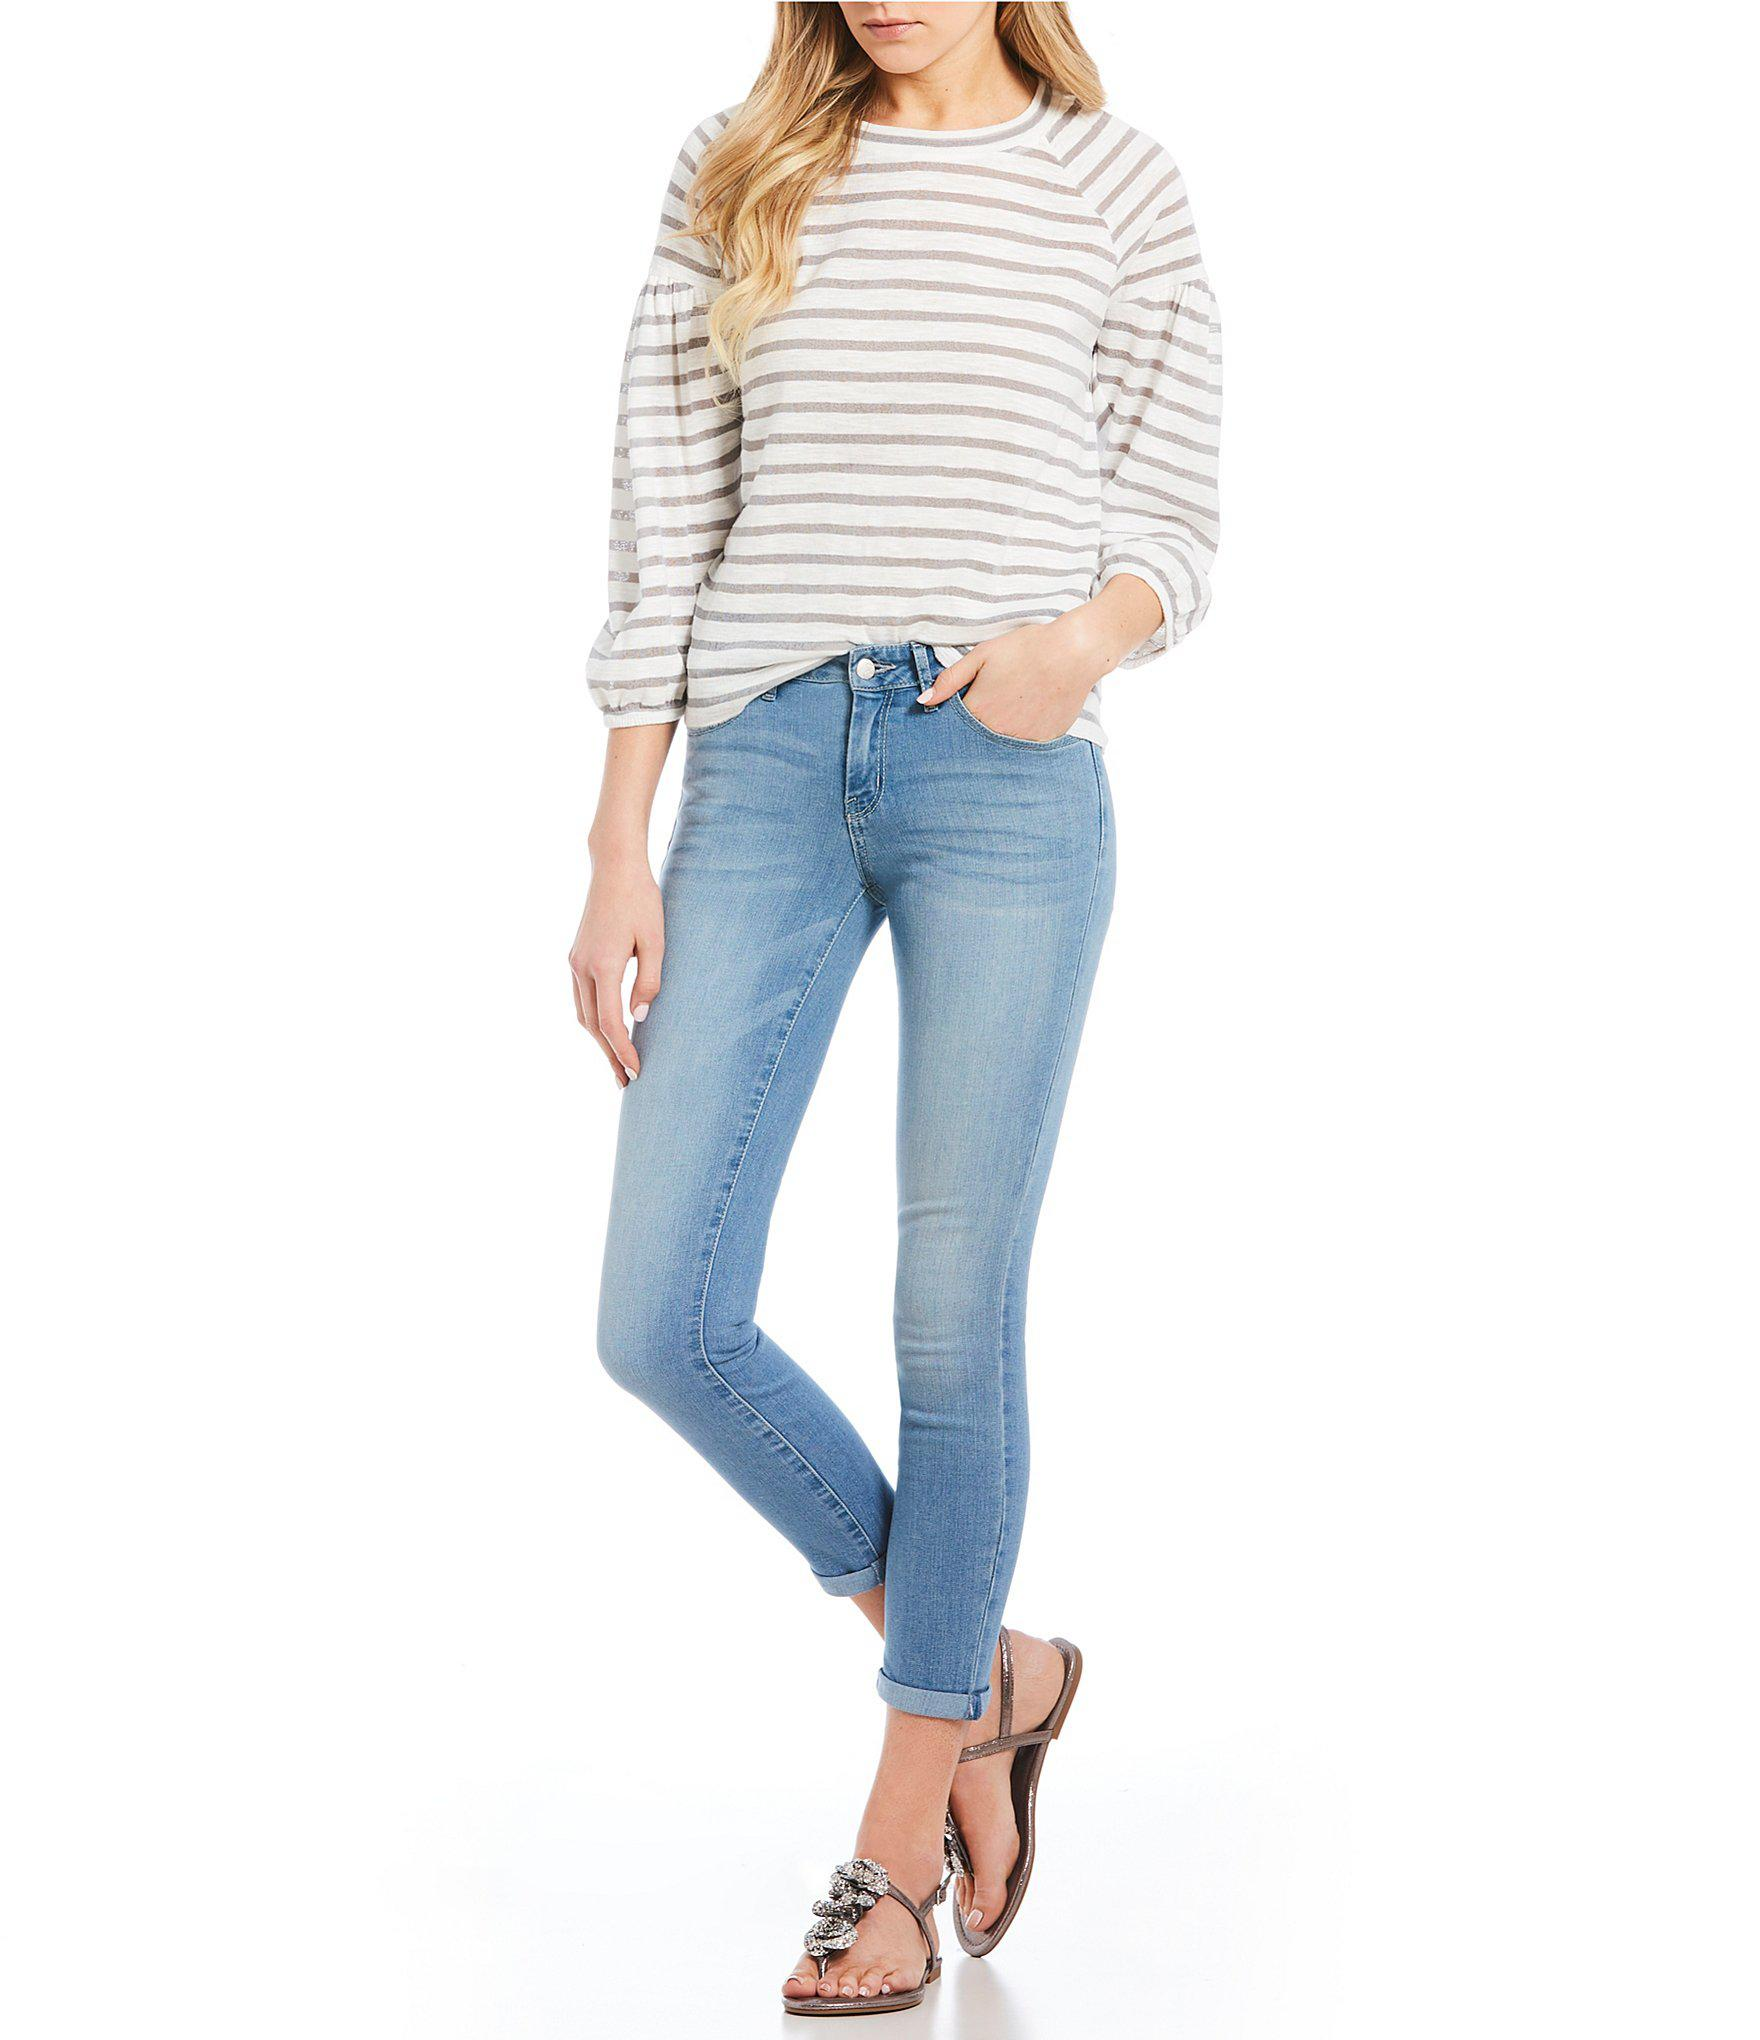 eb51a3d1e4e747 Jessica Simpson - Gray Suwa Striped Balloon Sleeve Top - Lyst. View  fullscreen